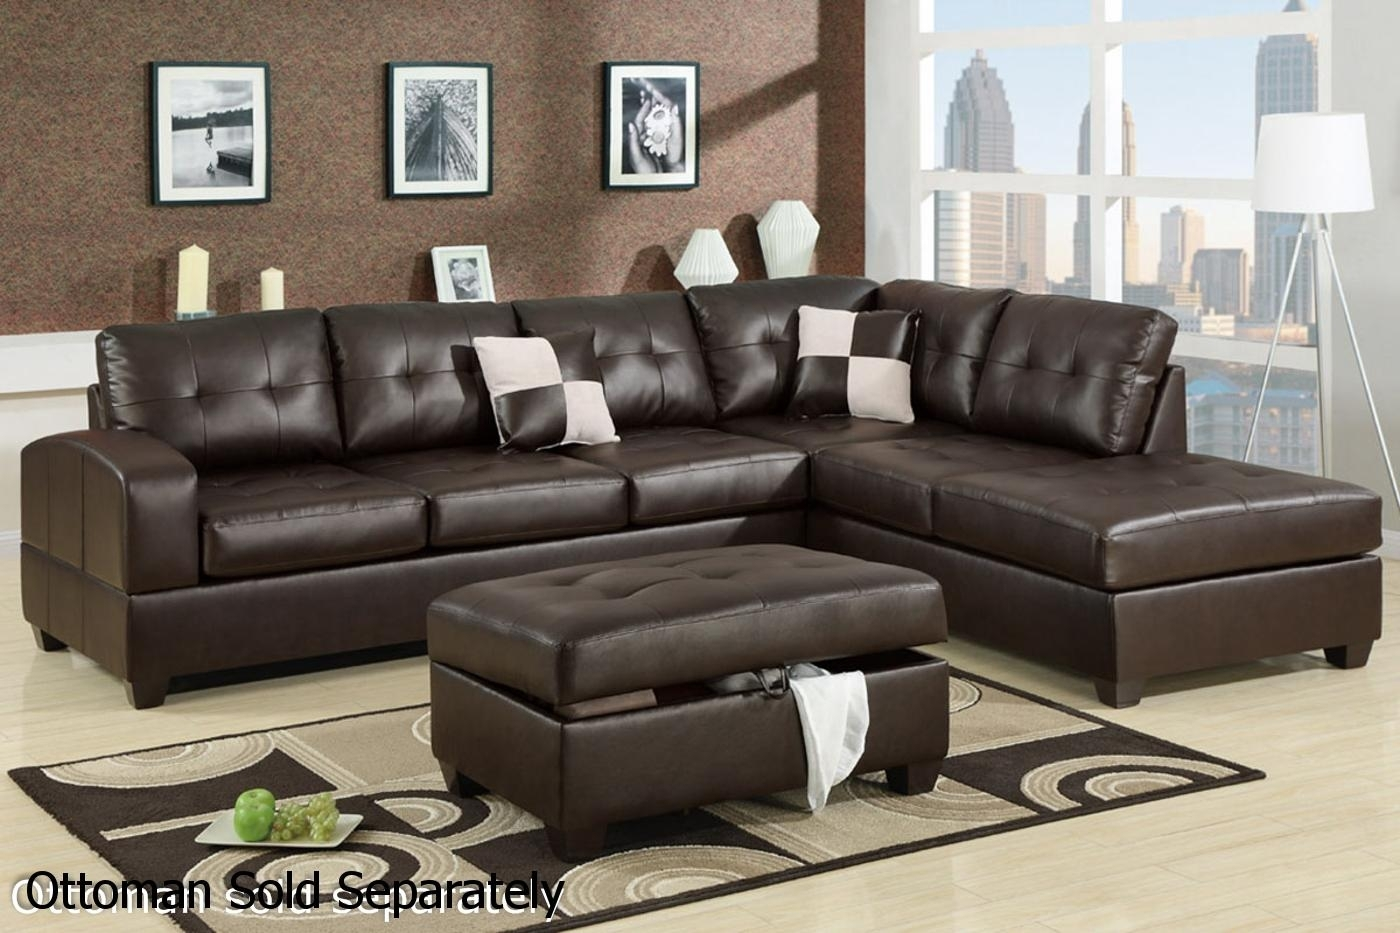 Steal A Sofa Furniture Outlet: 10 Top Leather Sectional Sofas